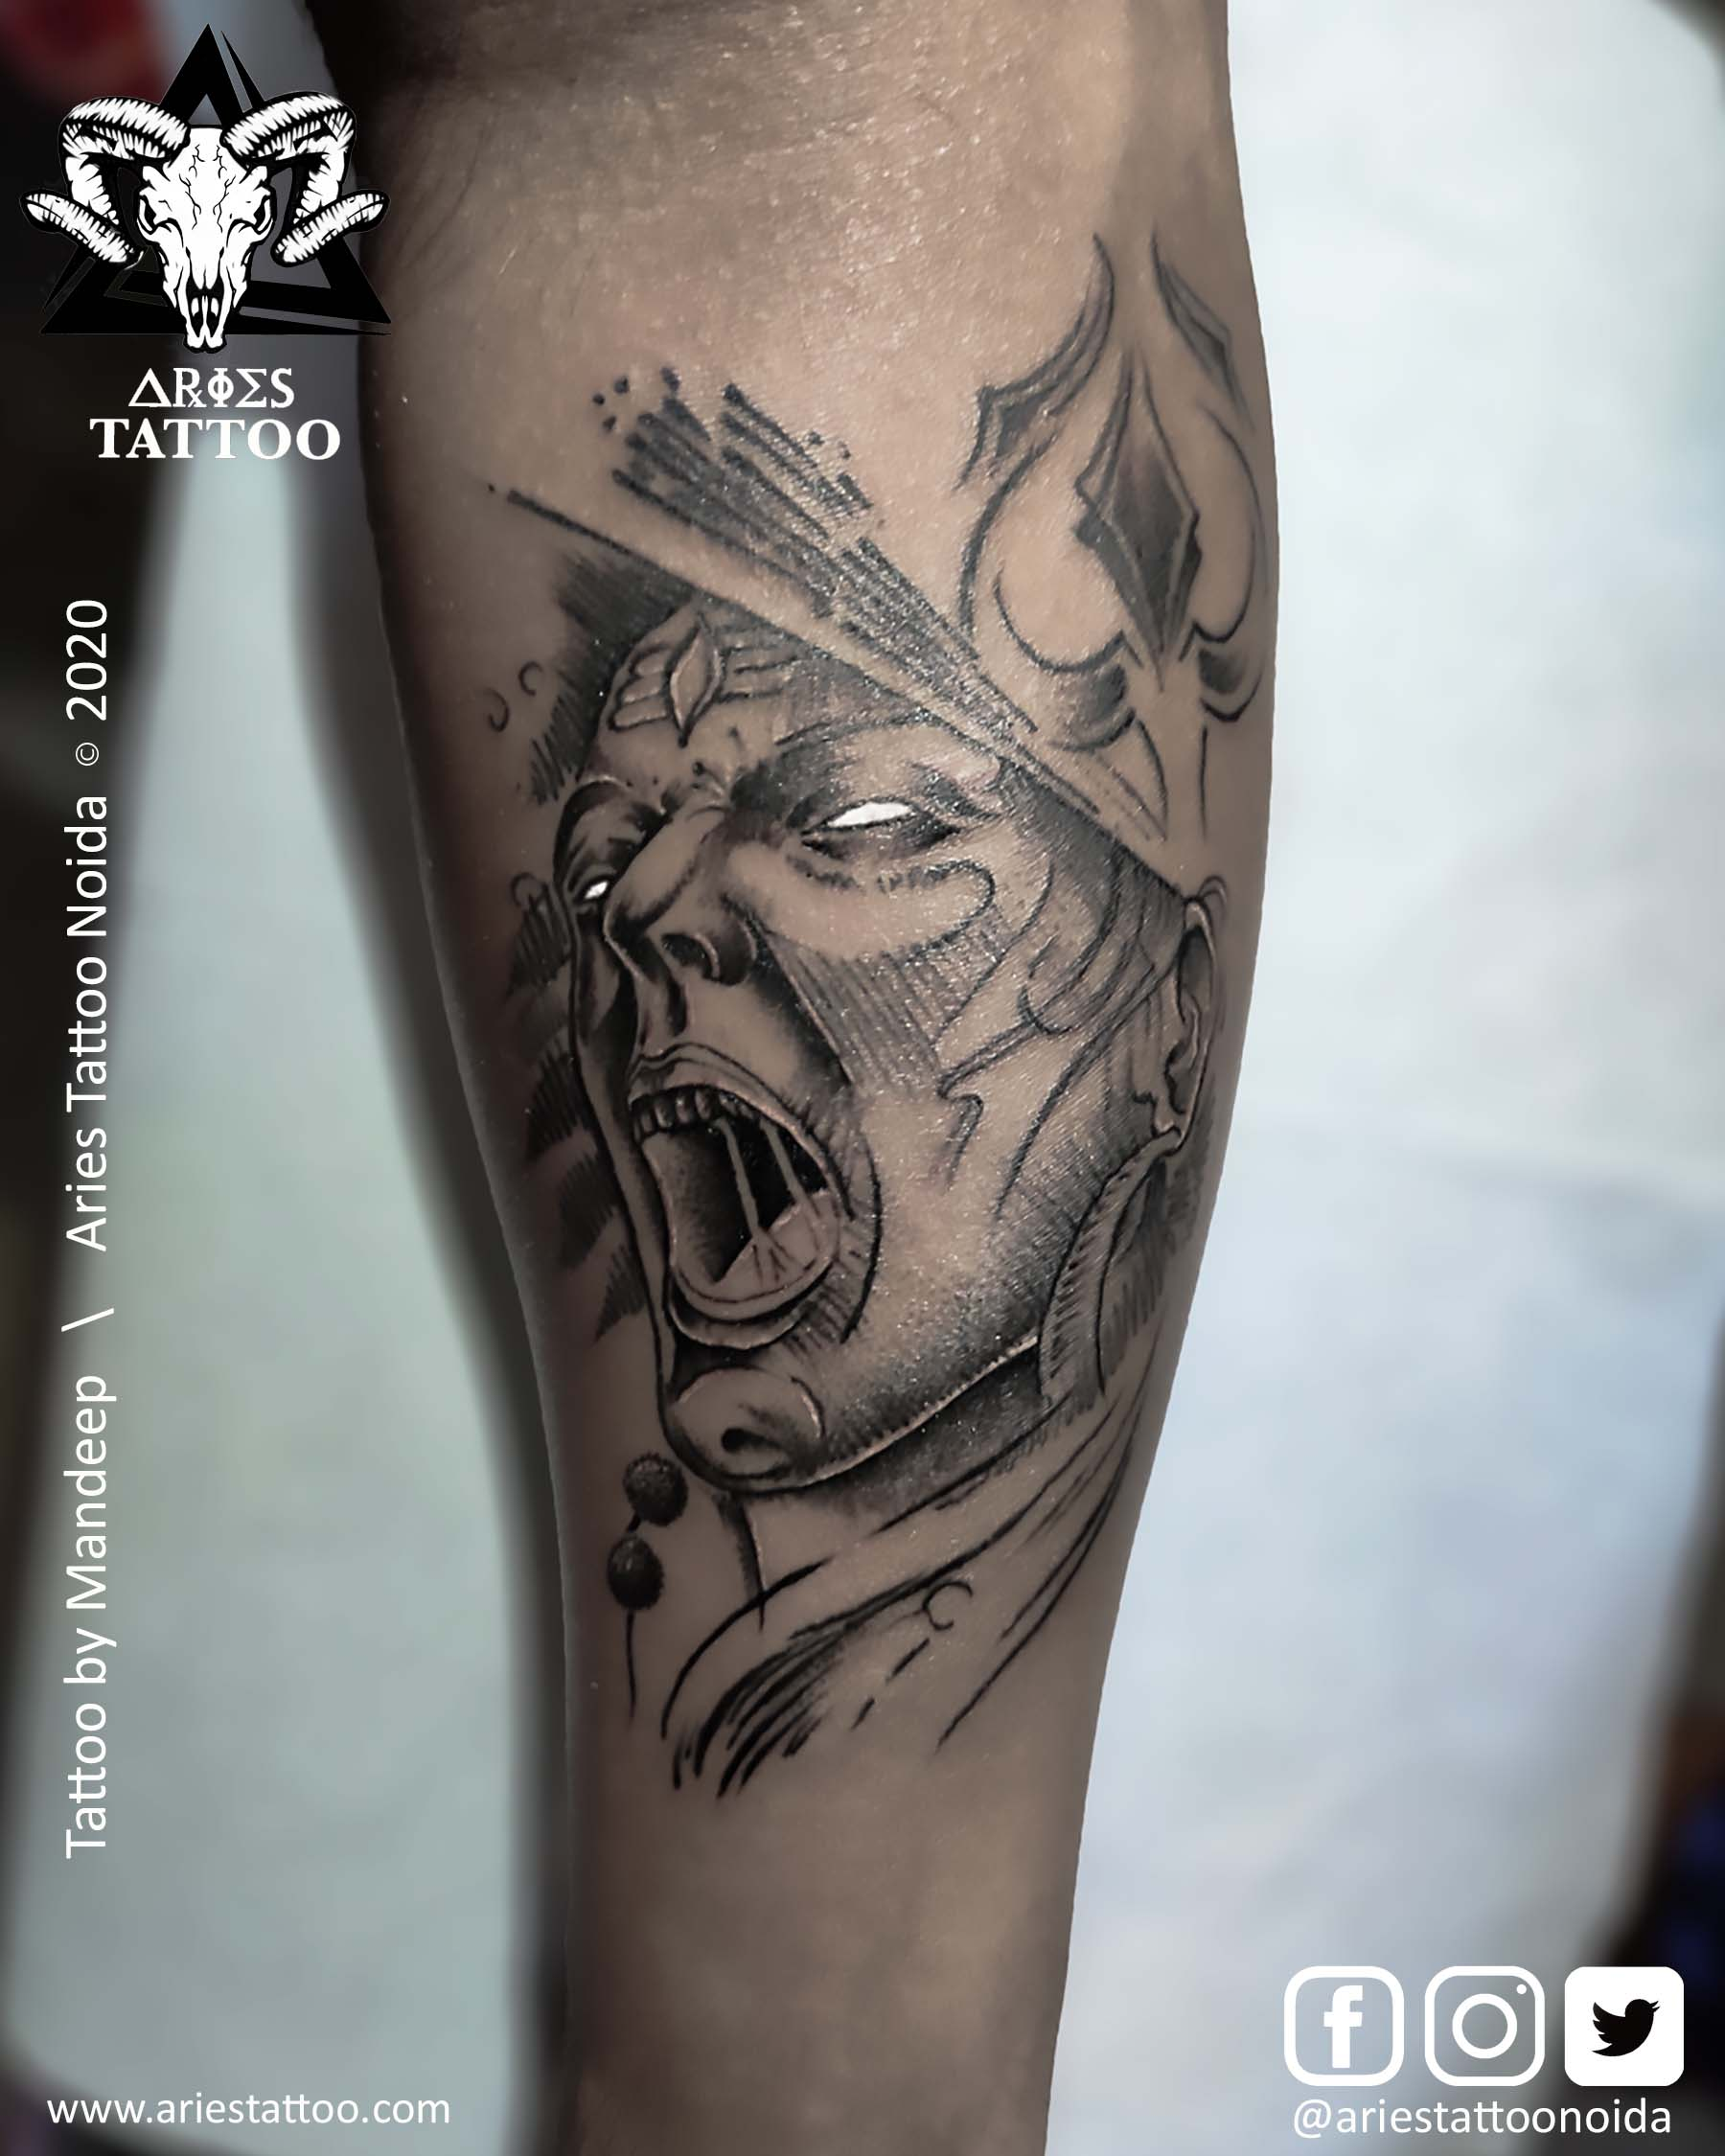 angry lord shiva Tattoo |Aries Tattoo Noida | Tattoo Shop and Studio In Noida